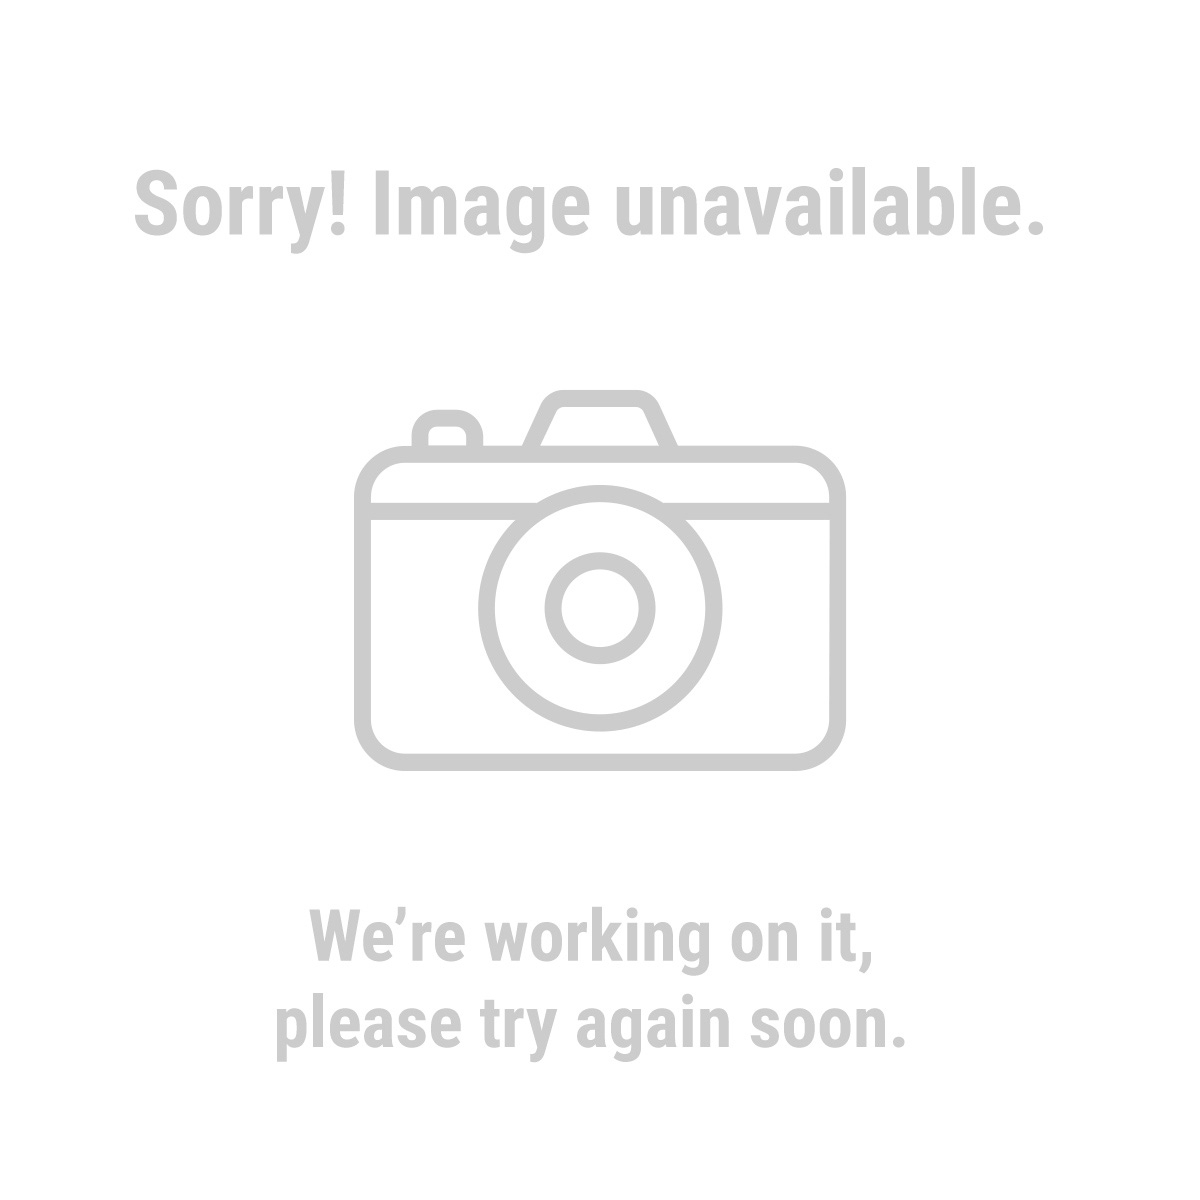 Plug Outlet Outlet plug install tool 94742